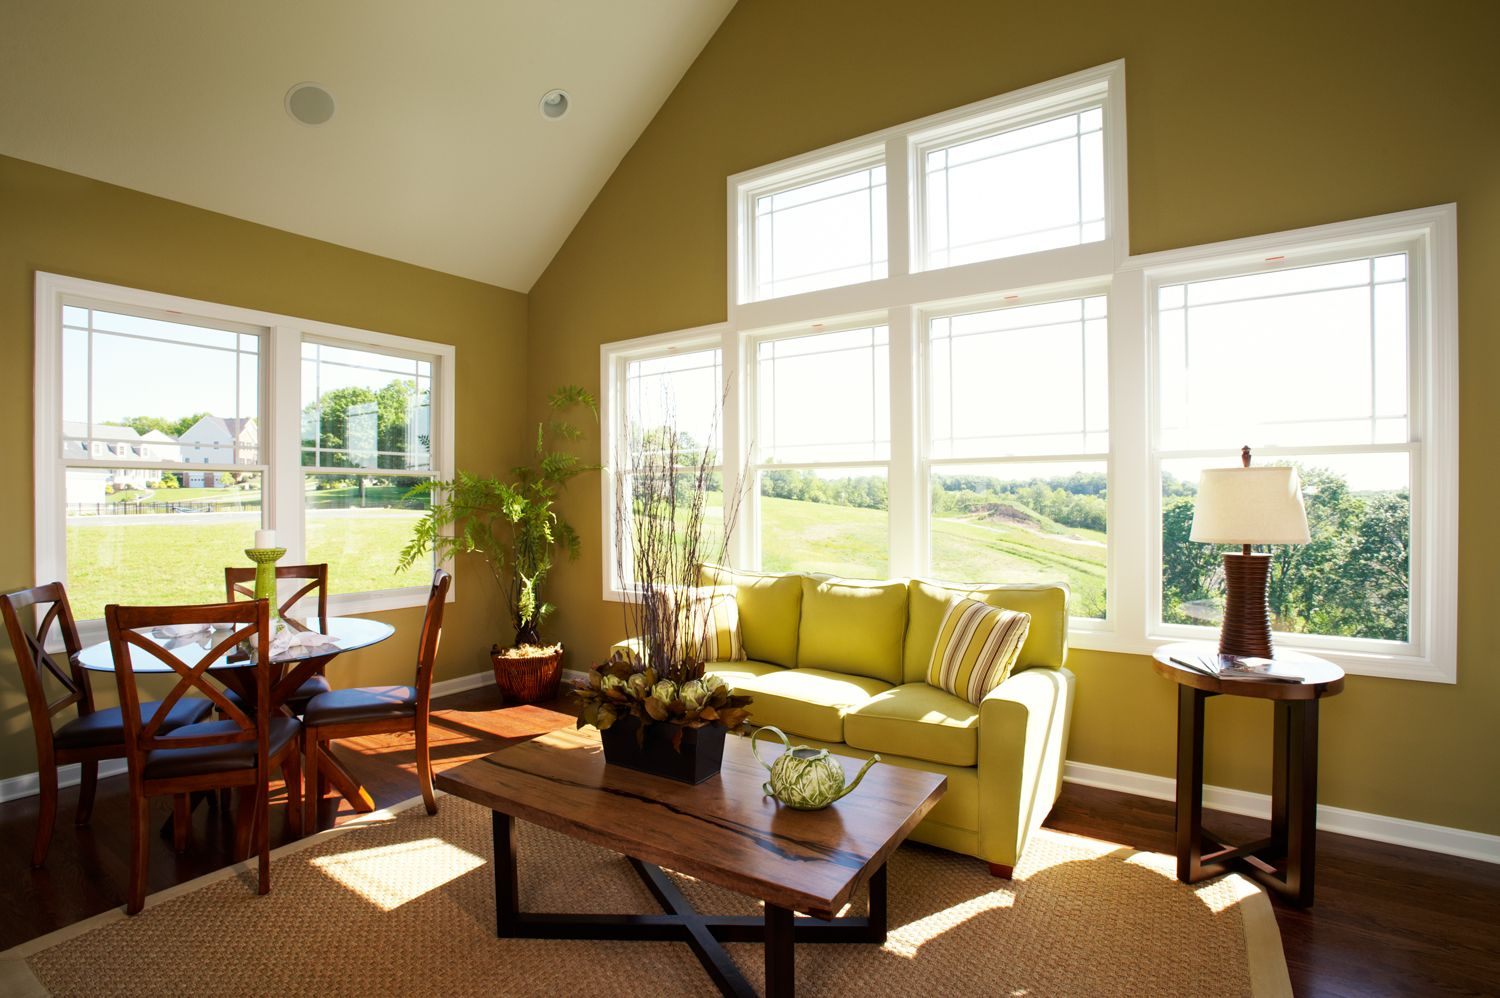 Sunroom off of the kitchen | Homes | Pinterest | Sunroom and Kitchens